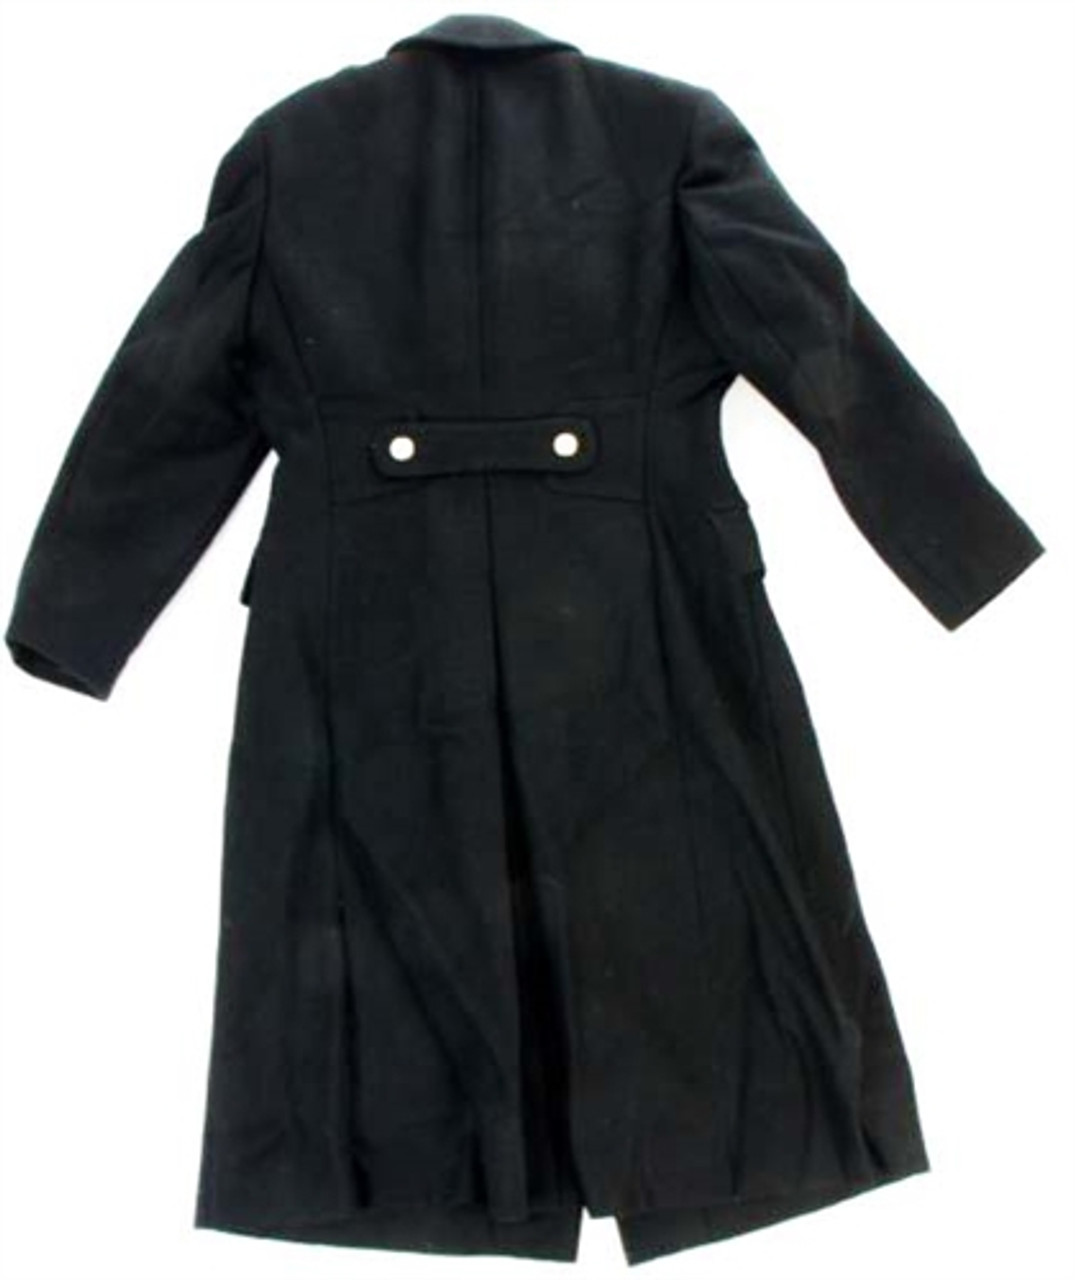 Original Russian Cadet Black Wool Overcoat from Hessen Surplus